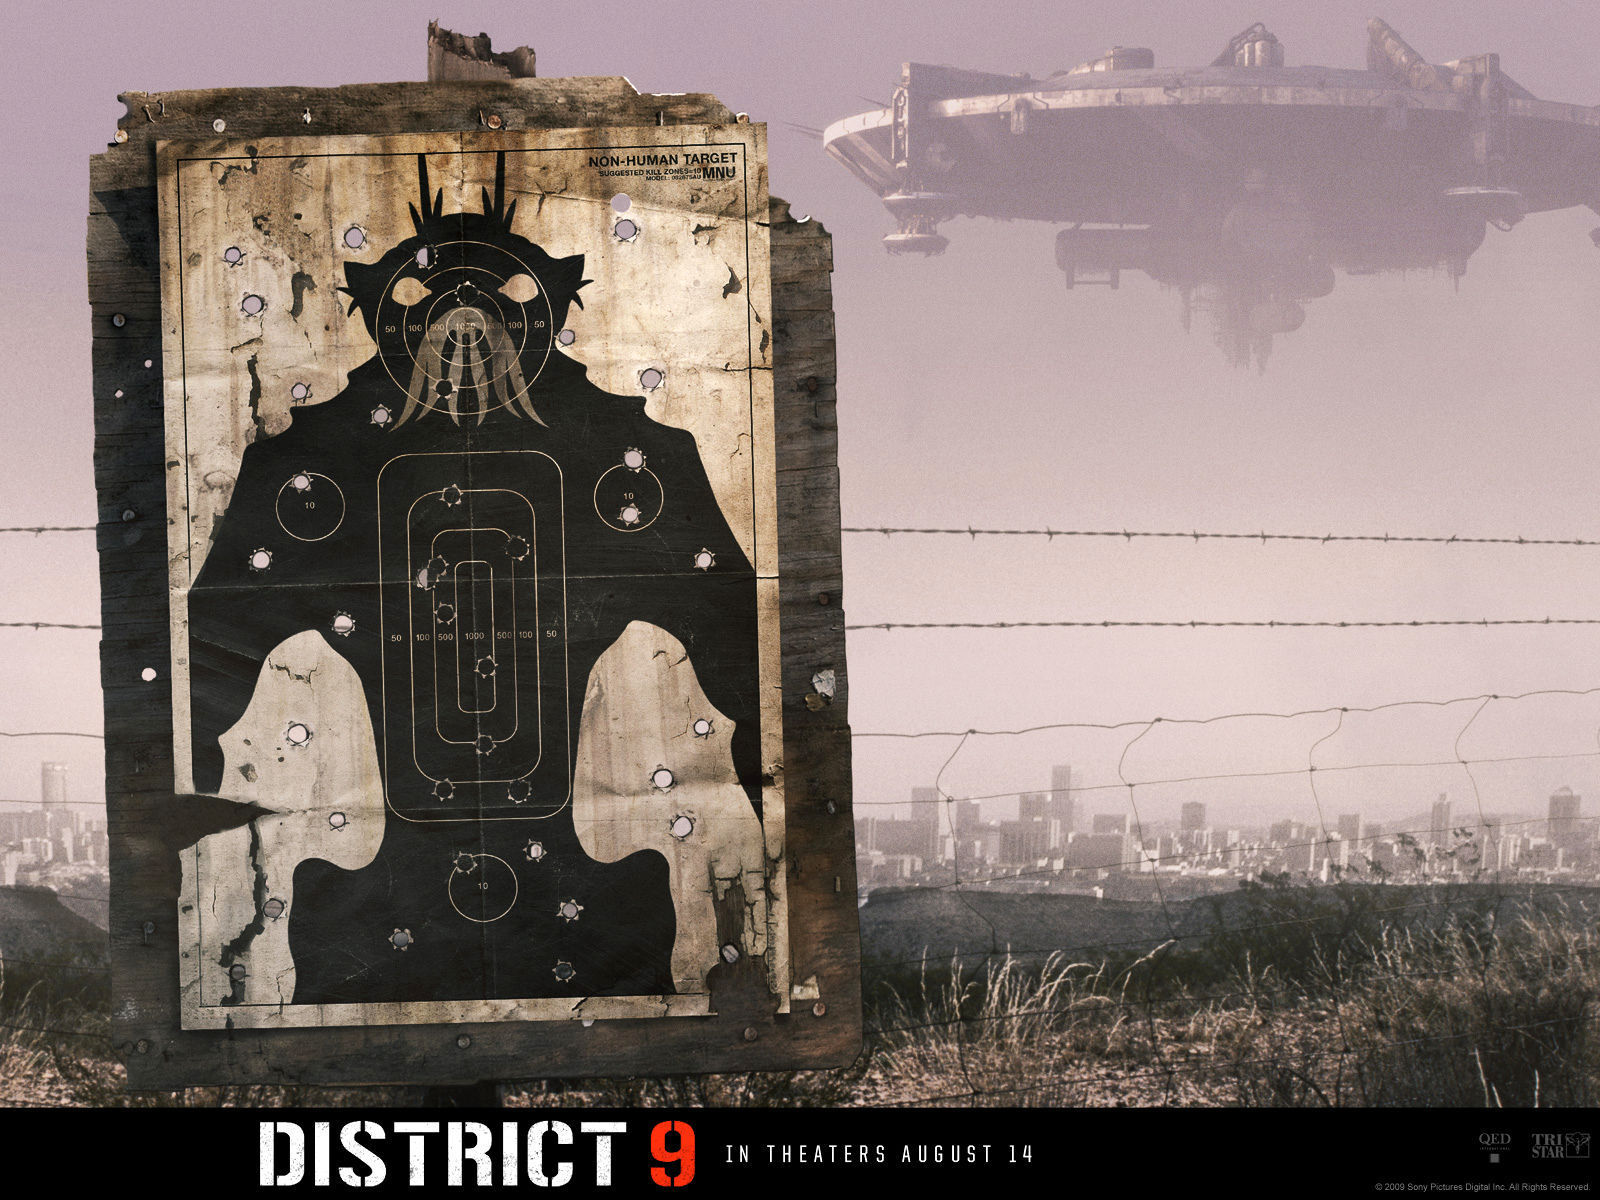 District 9 Images Alien Shooting Range Movie Poster HD Wallpaper And Background Photos